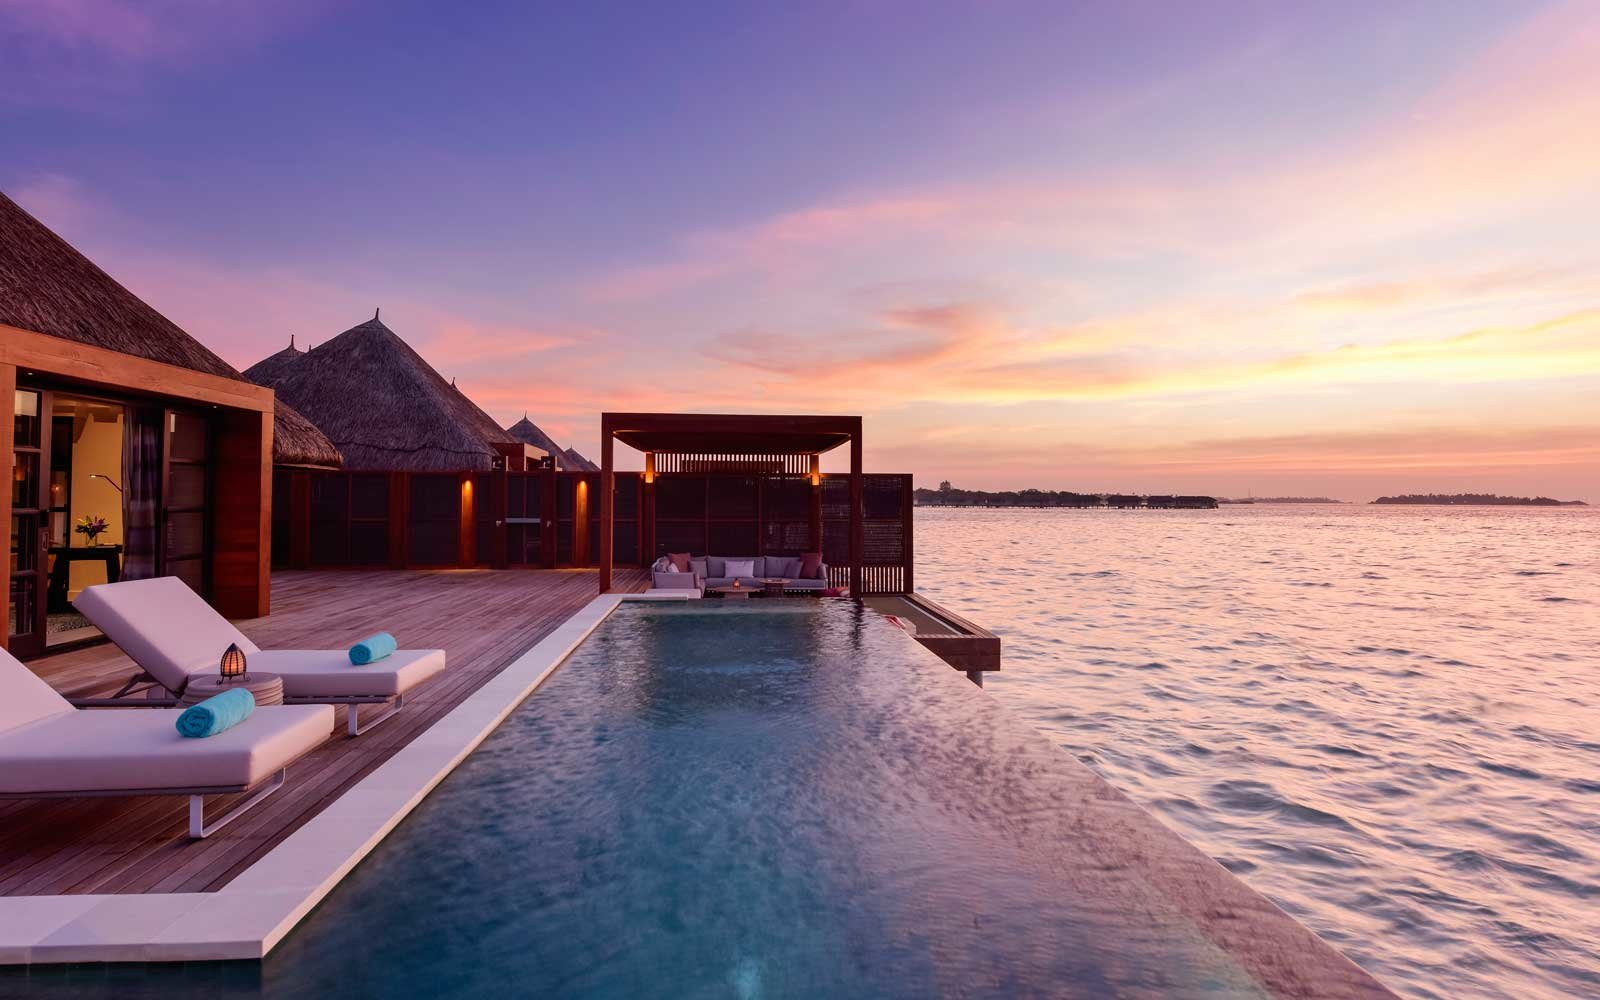 Sunset at the Four Seasons Resort Maldives at Kuda Huraa